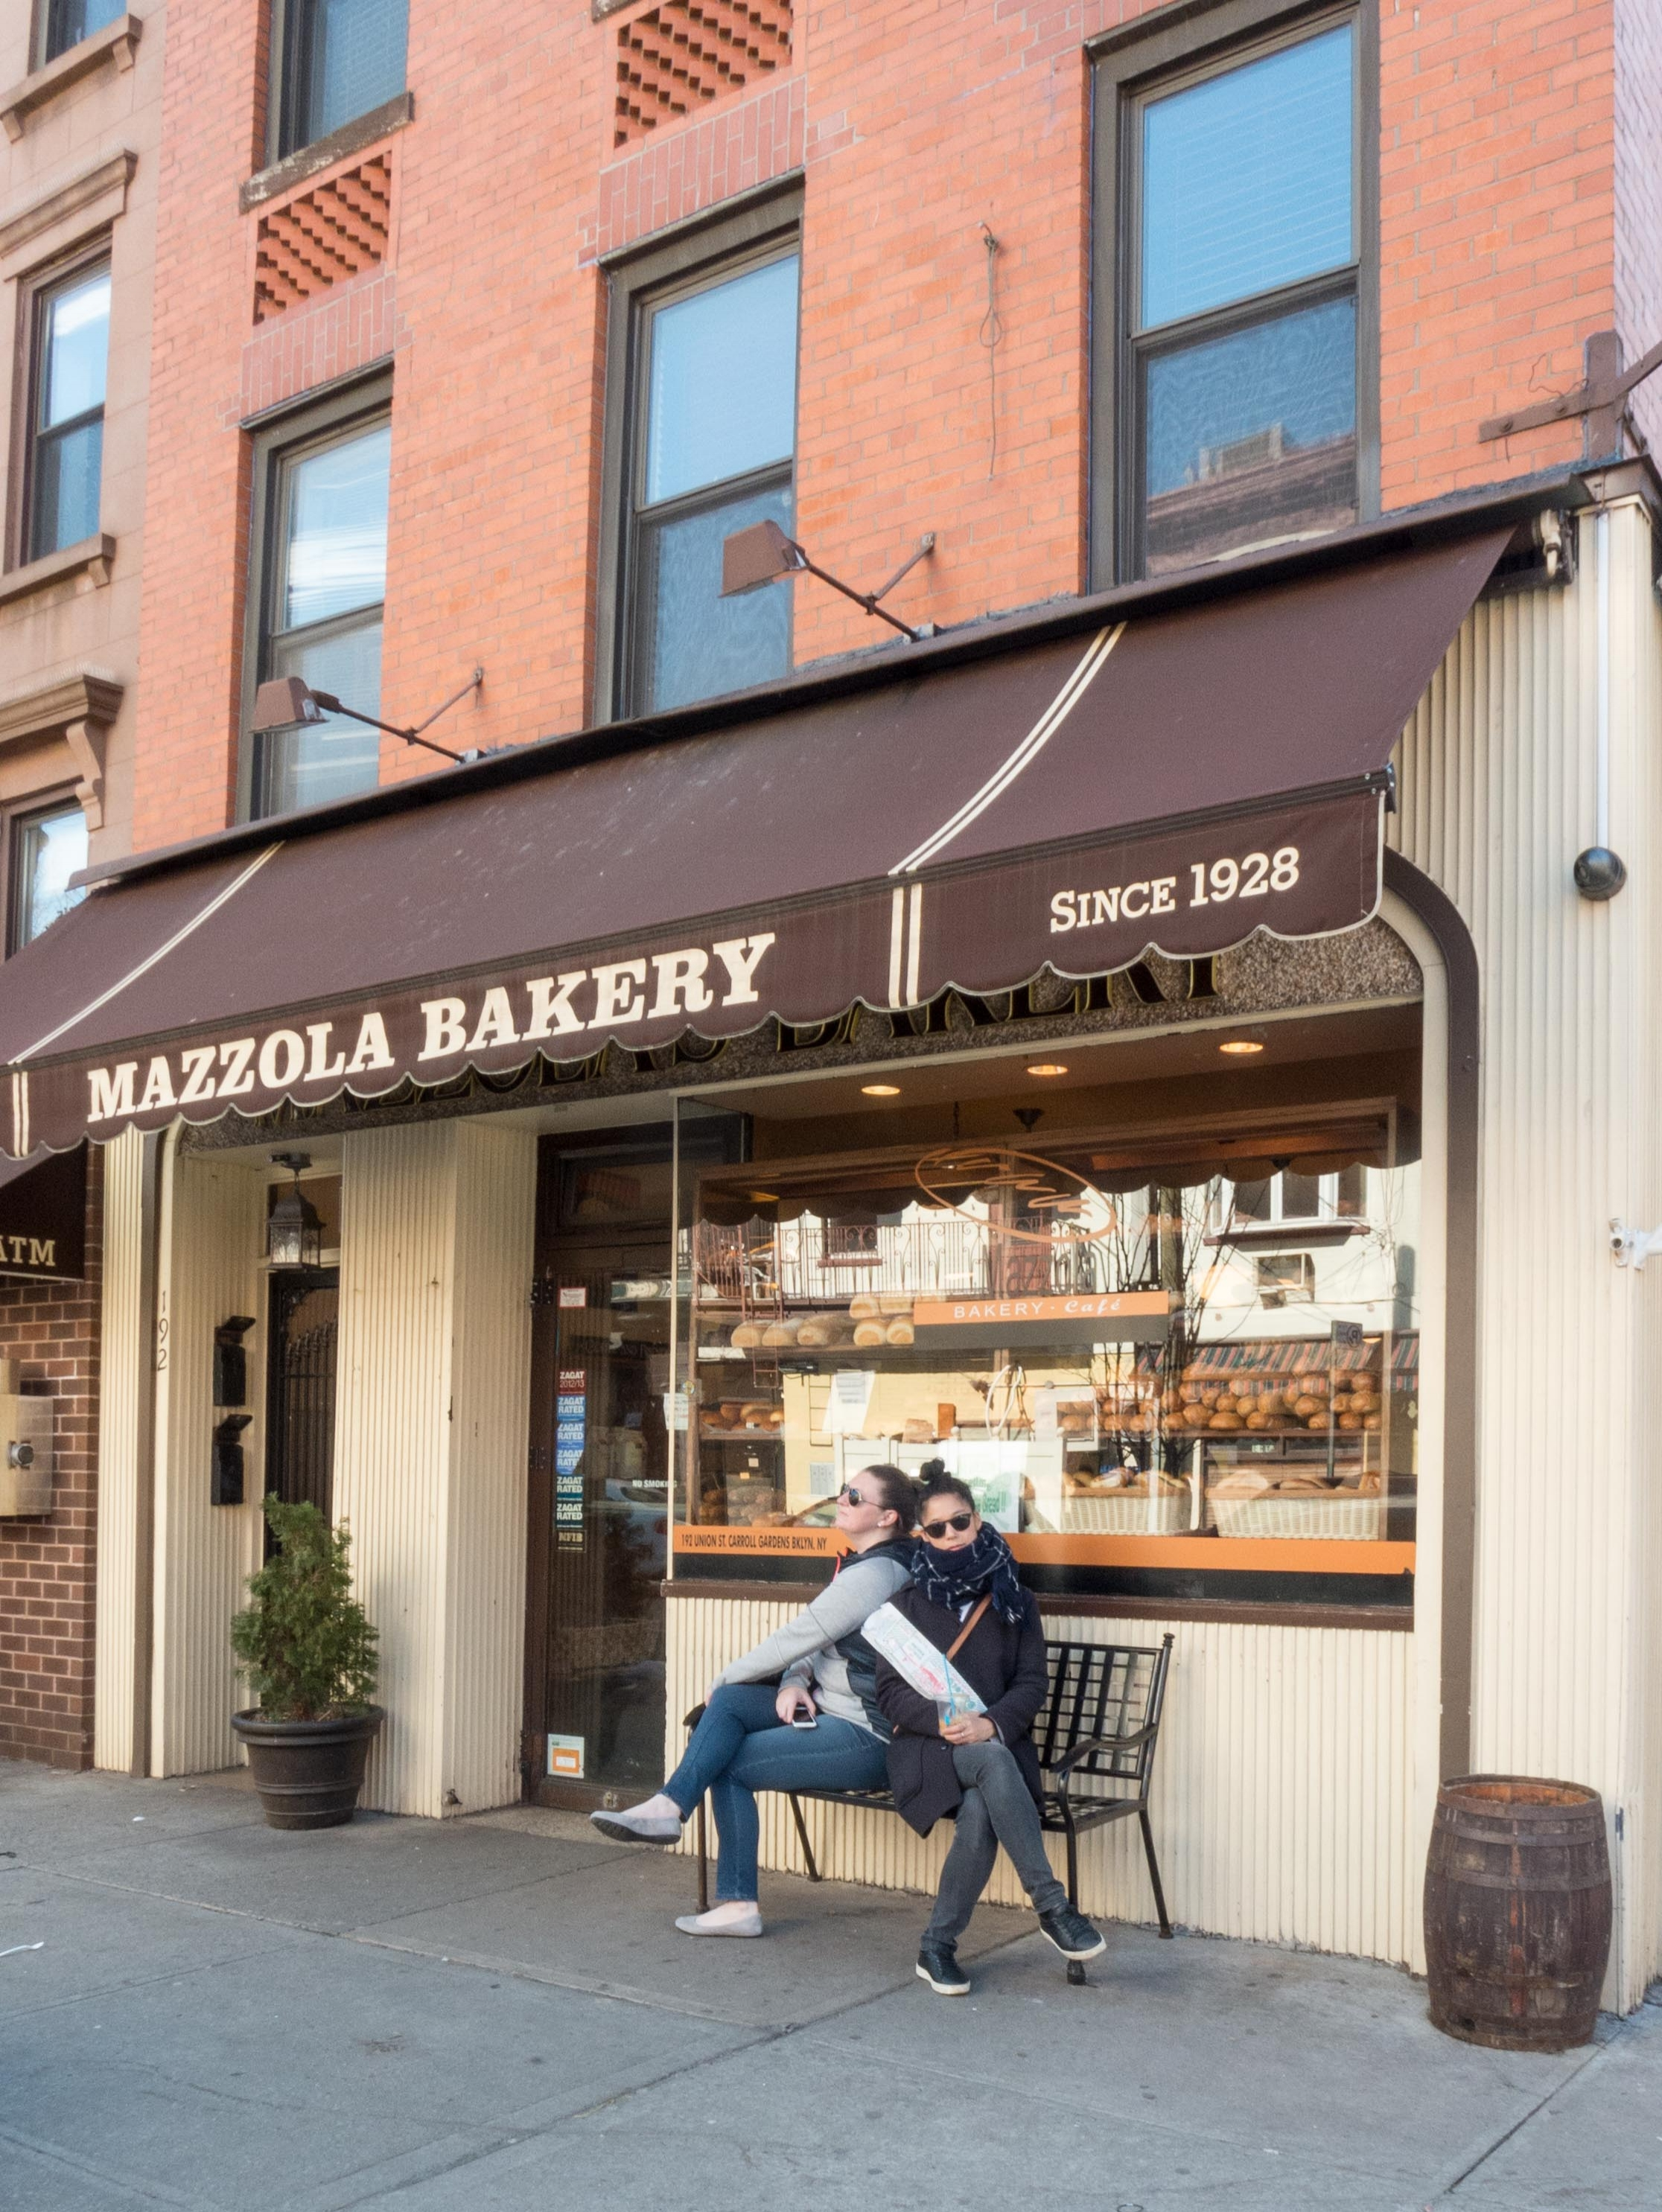 After strolling around for a bit, we needed a snack. Steph said it was a must that we stop by  Mazzola Bakery  for lard bread. What is lard bread you ask? It's a loaf of bread with pieces of cheese and ham baked inside. It's heaven.